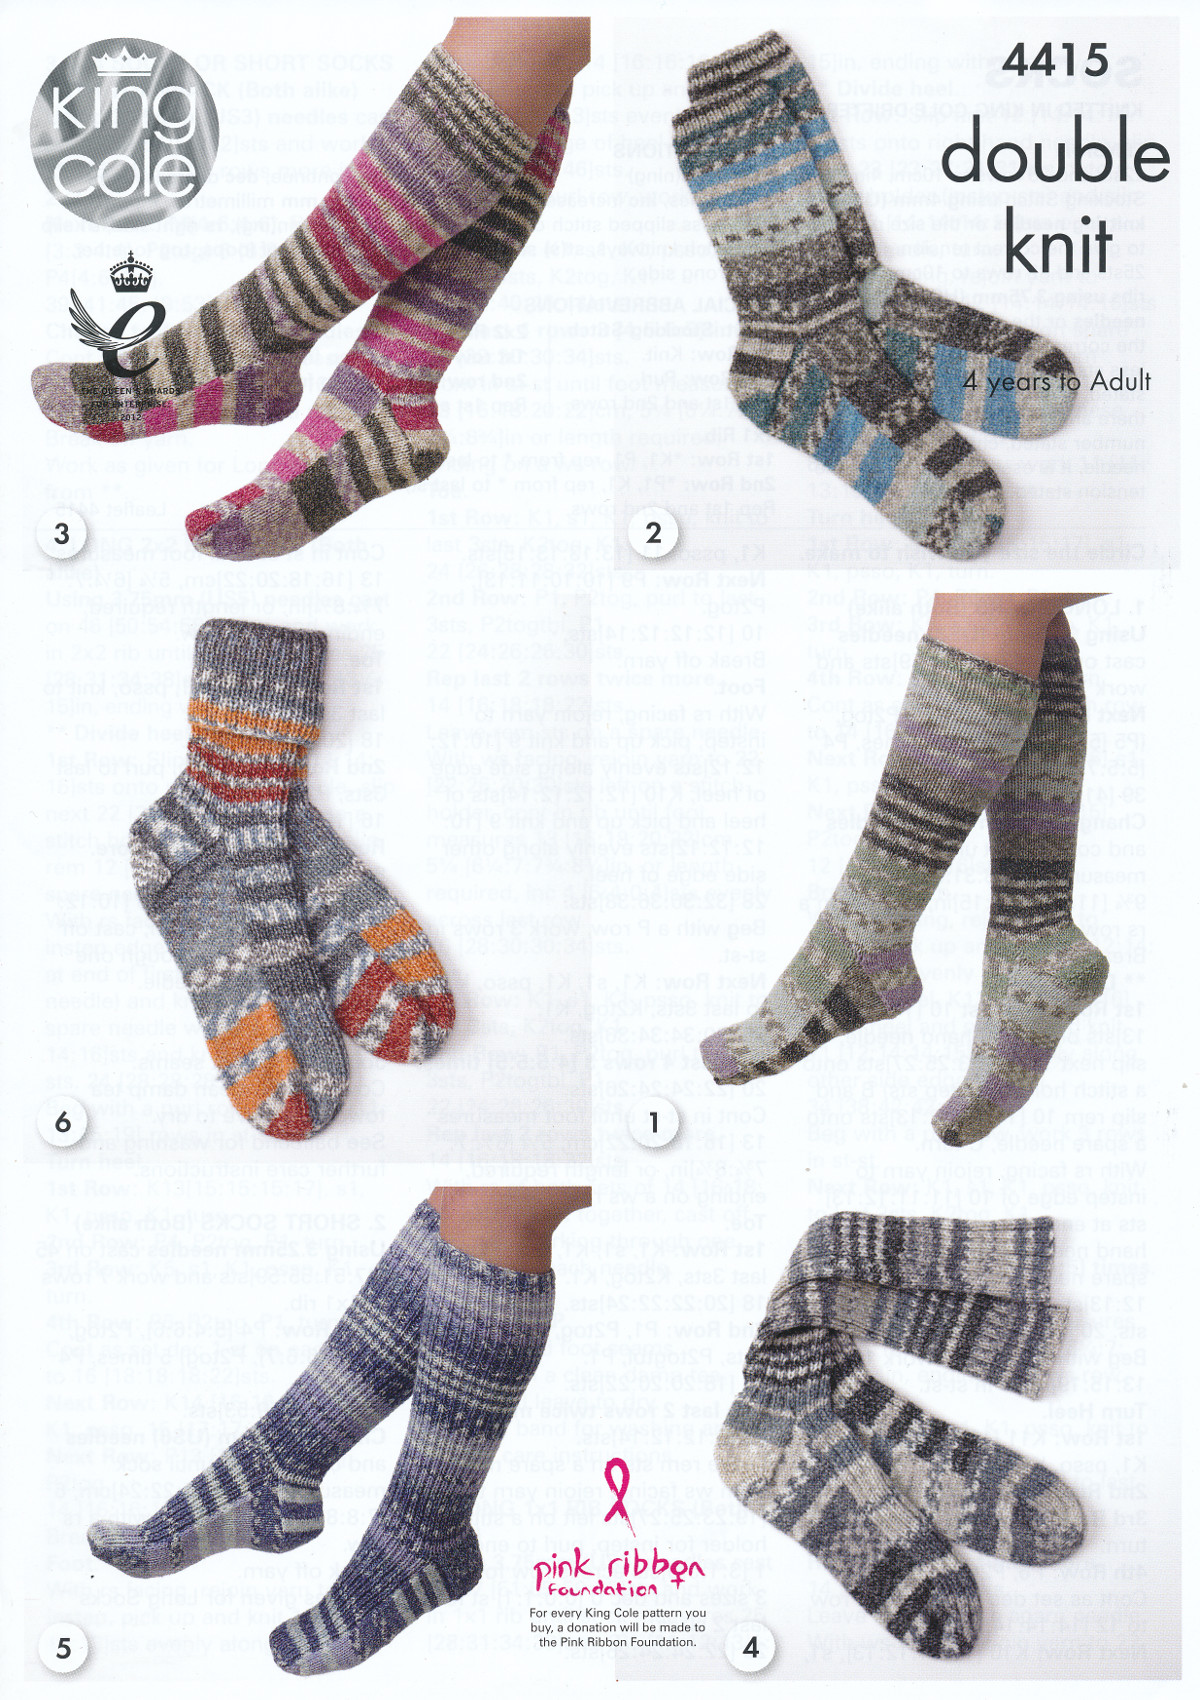 King cole double knitting pattern long short socks kids adults please look at images below for the chart showing measurements yarn and materials requirement to make this garment bankloansurffo Image collections